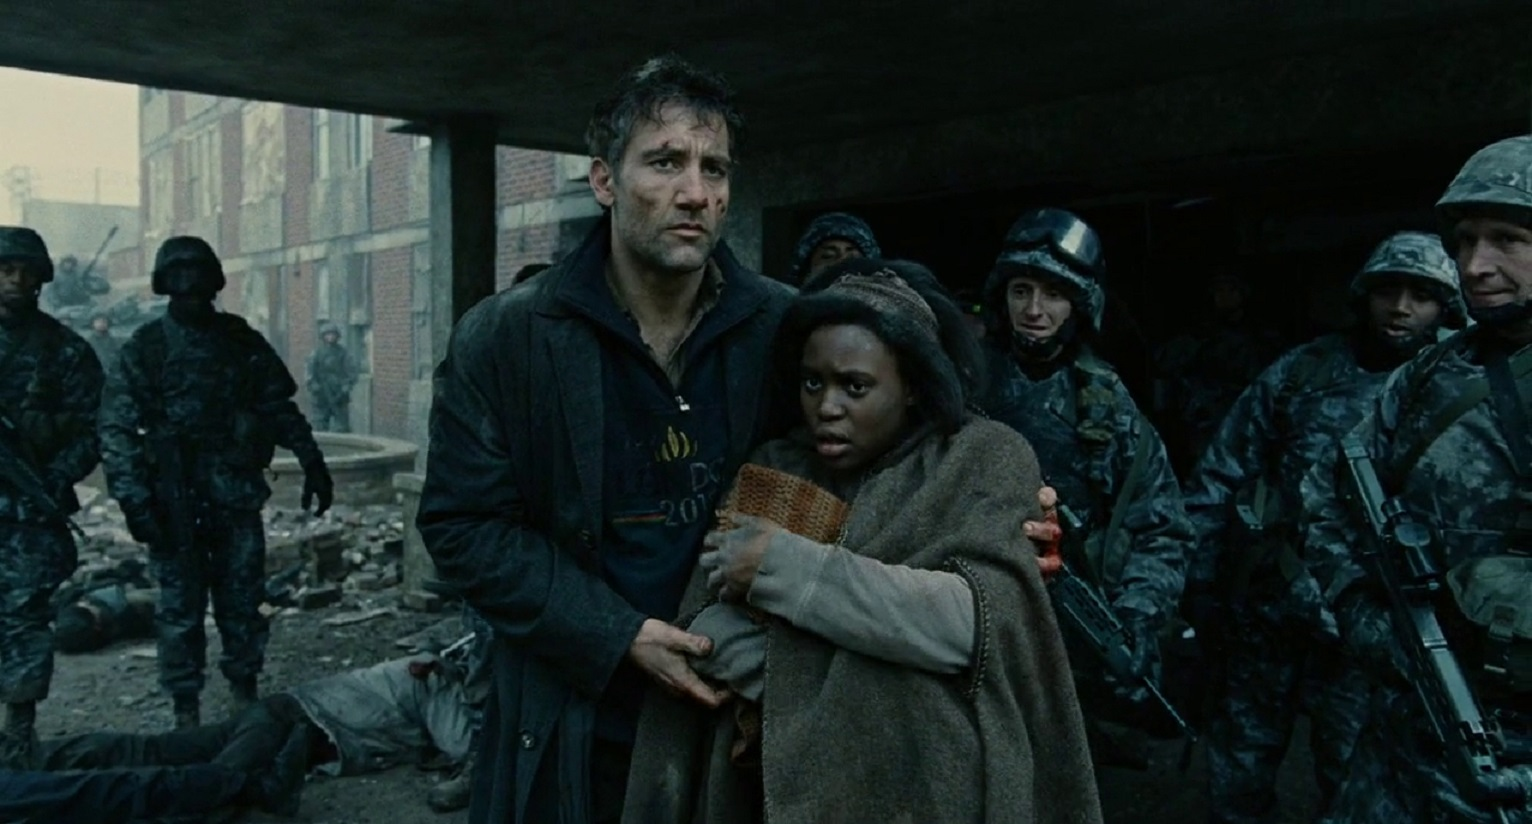 Clive Owen guides pregnant Claire-Hope Ashitey through the refugee camp in Children of Men (2006)